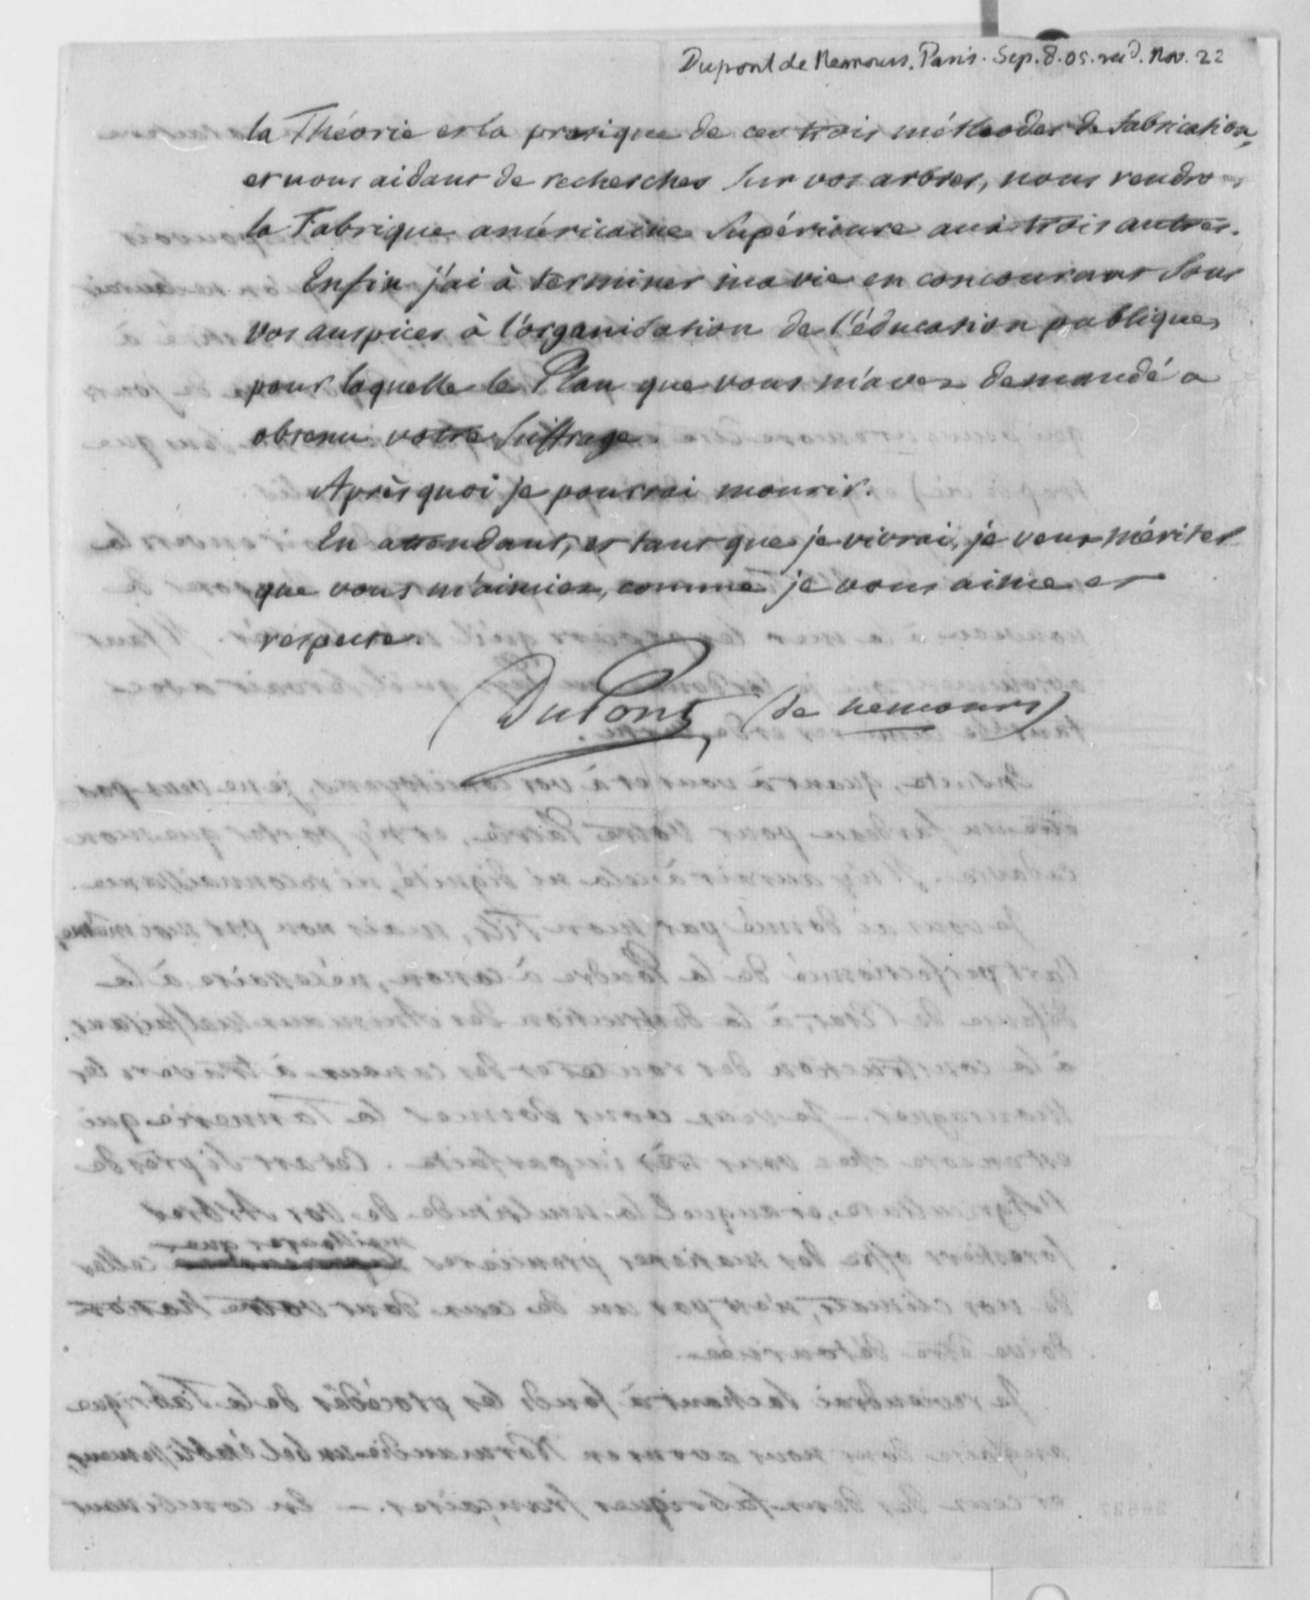 Pierre S. Dupont de Nemours to Thomas Jefferson, September 8, 1805, in French